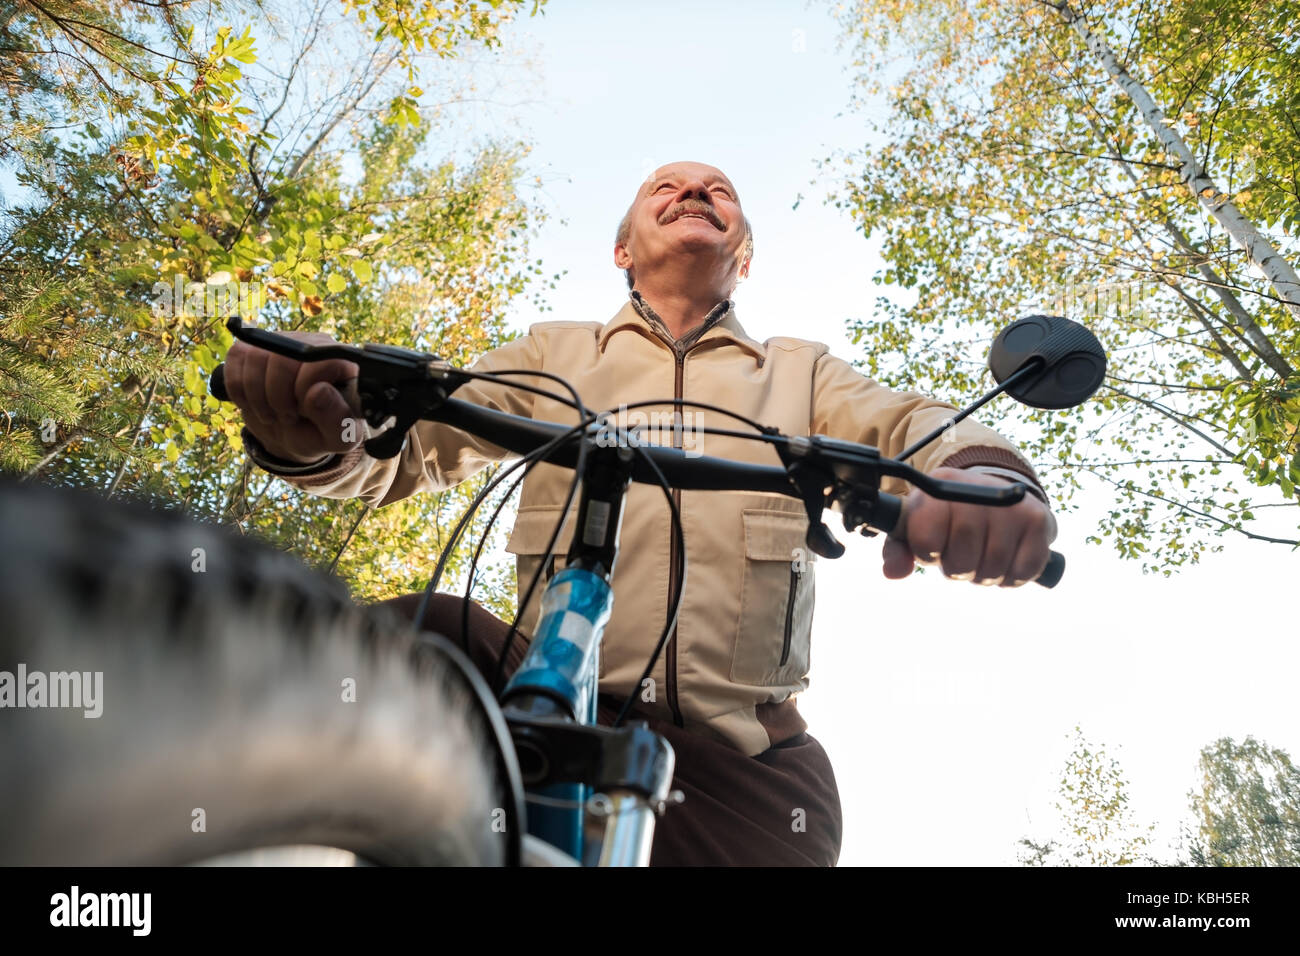 Senior man on cycle ride in countryside - Stock Image